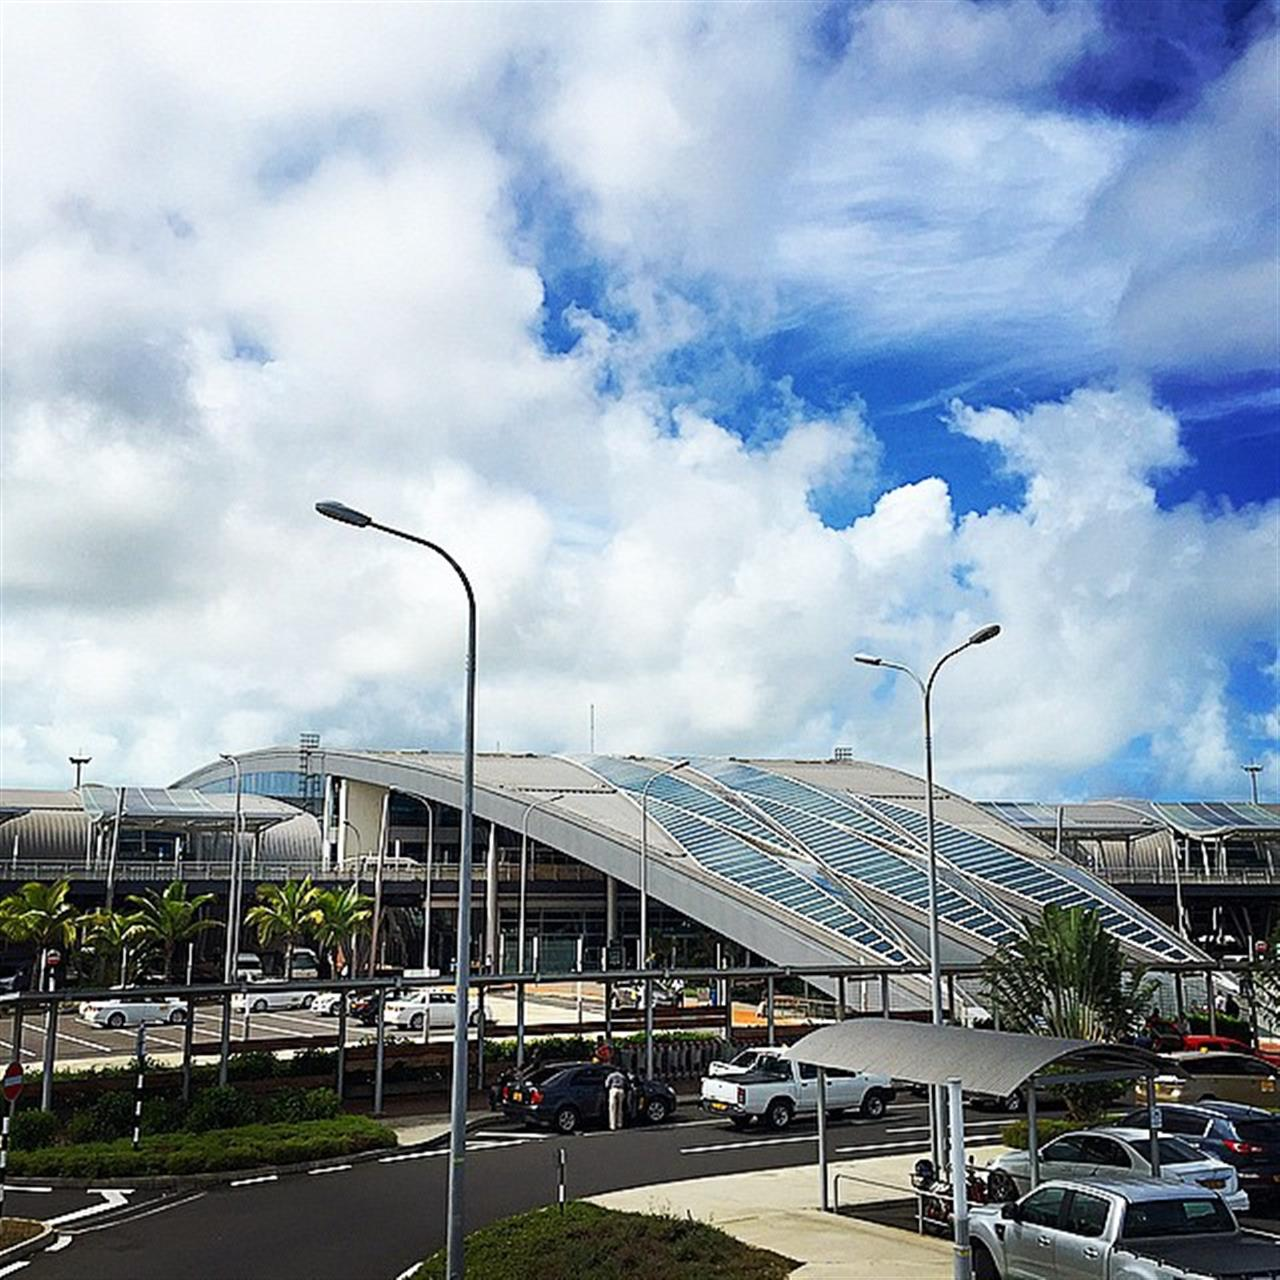 International airport of #mauritius #LeadingRelocal